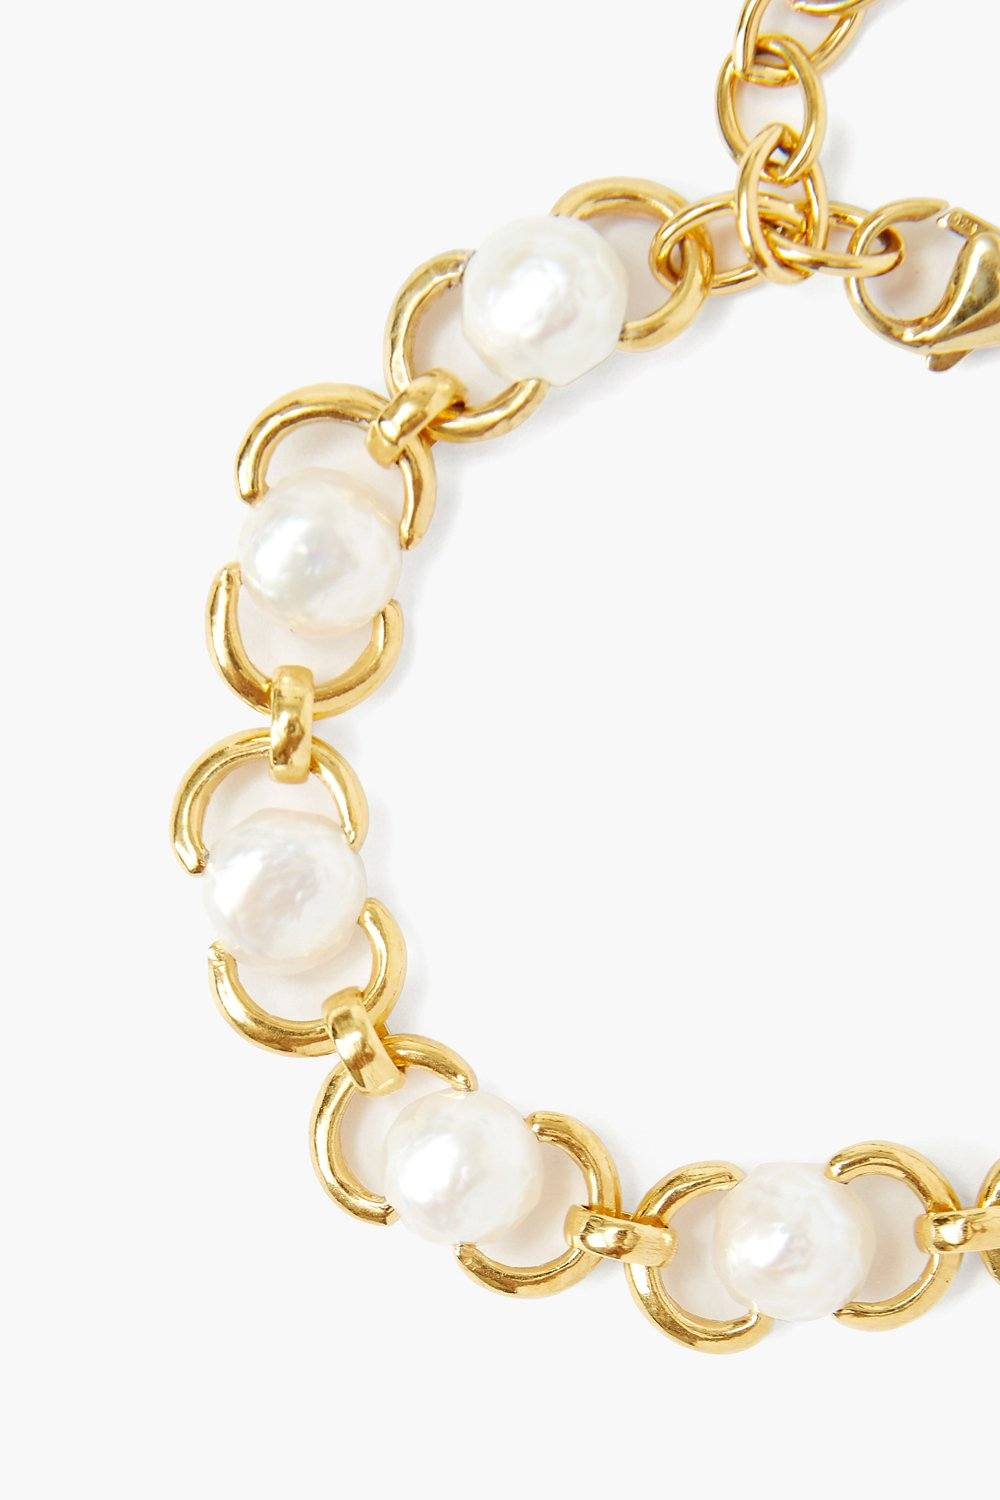 White Baroque Pearl and Gold Chain Bracelet